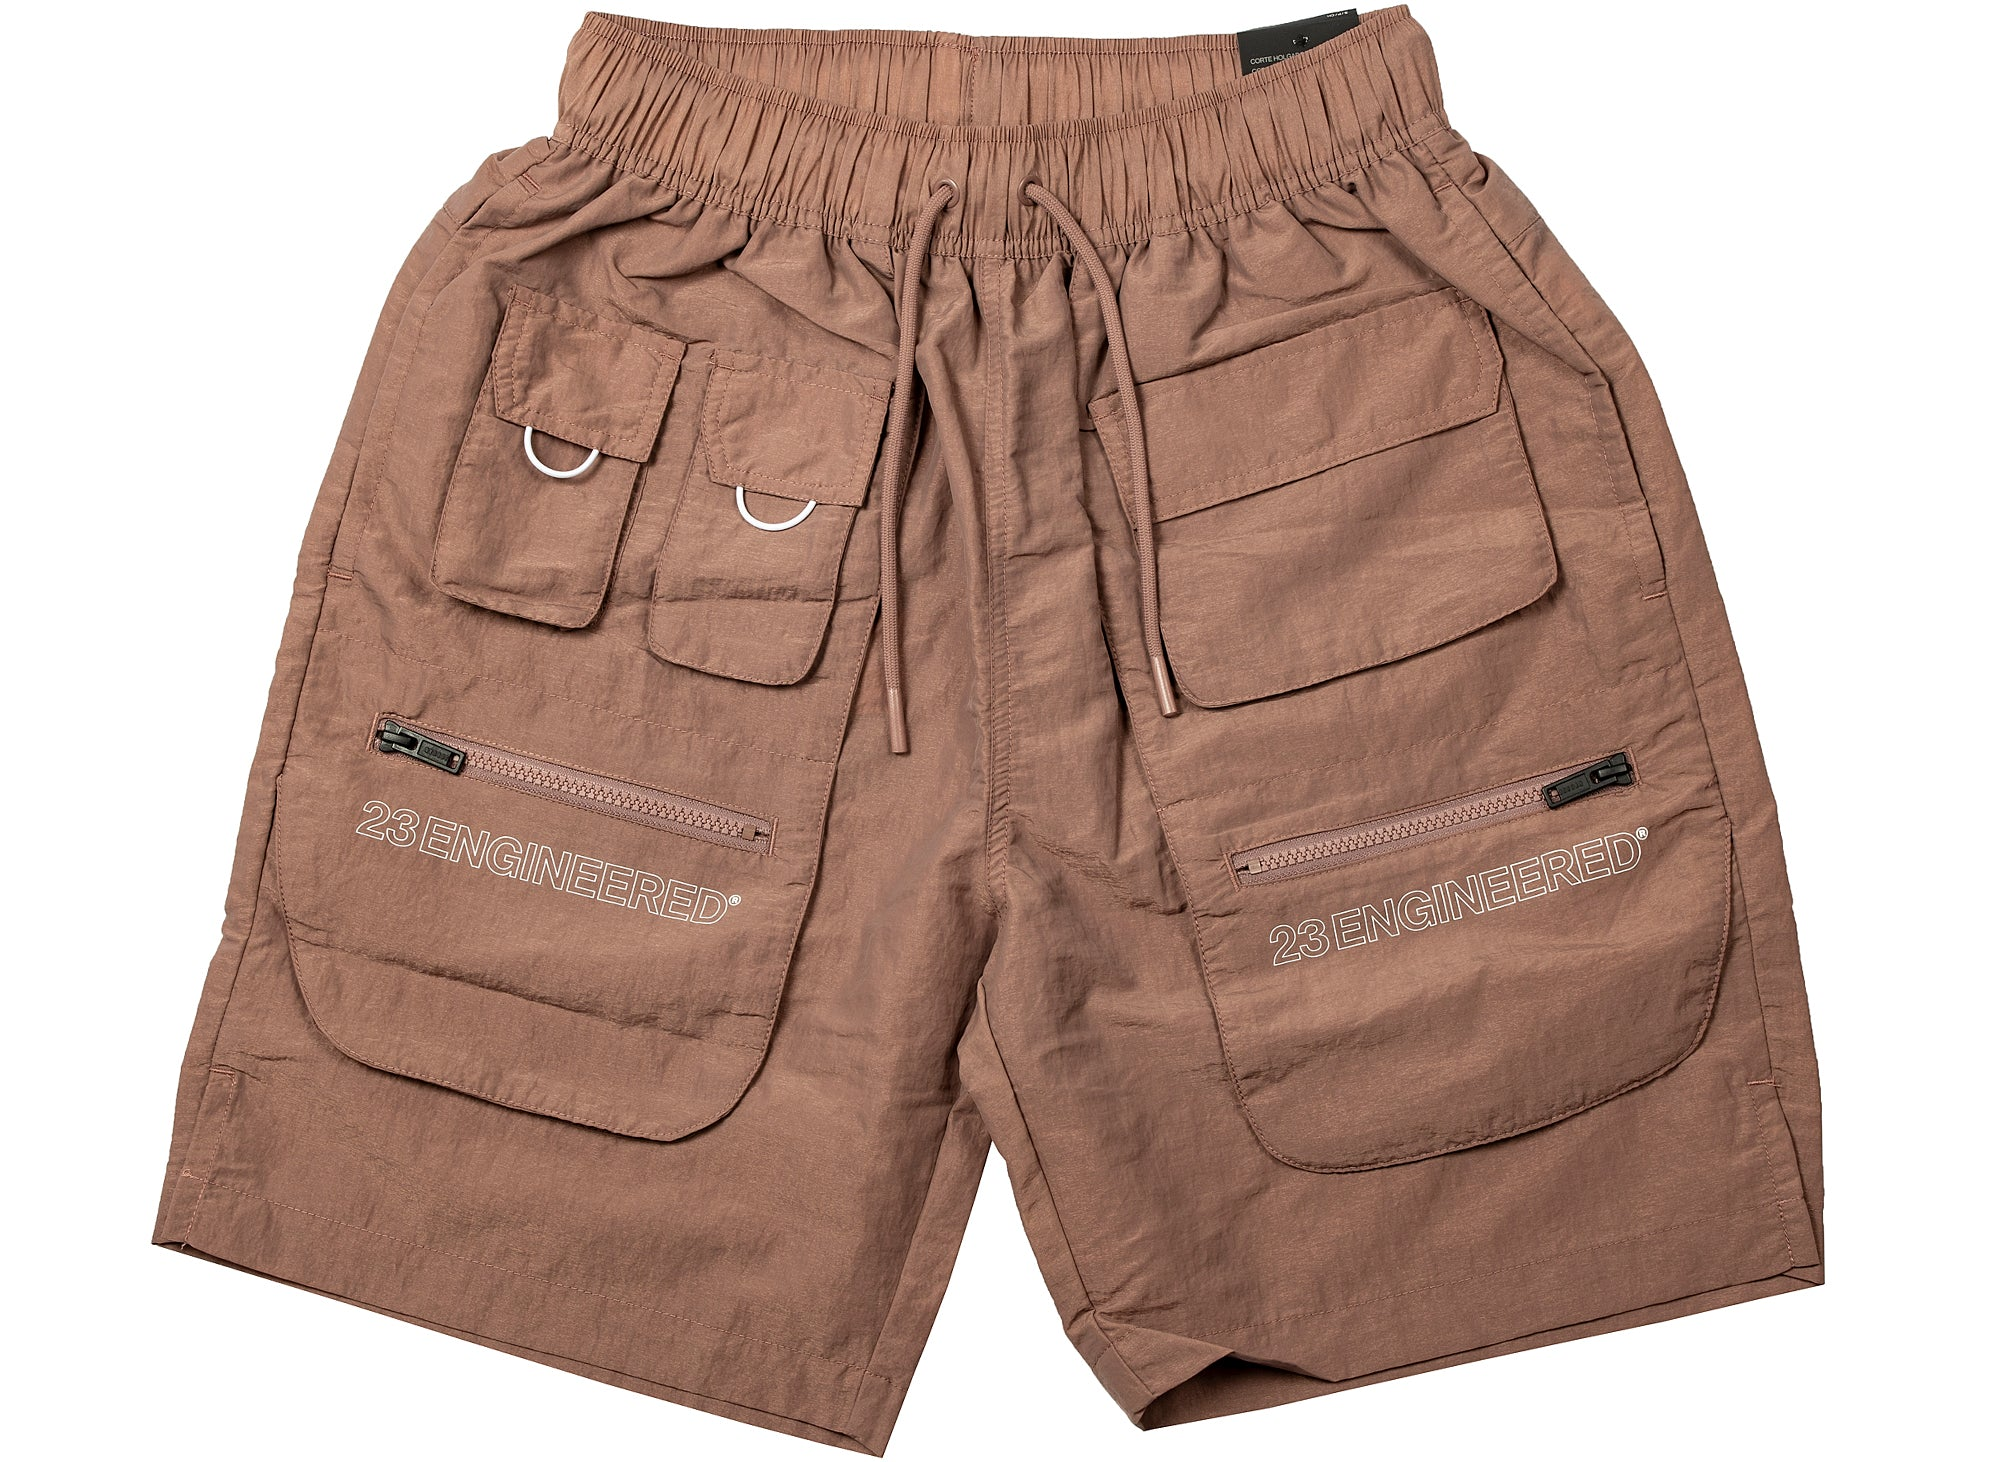 Jordan 23 Engineered Utility Shorts in Mauve xld